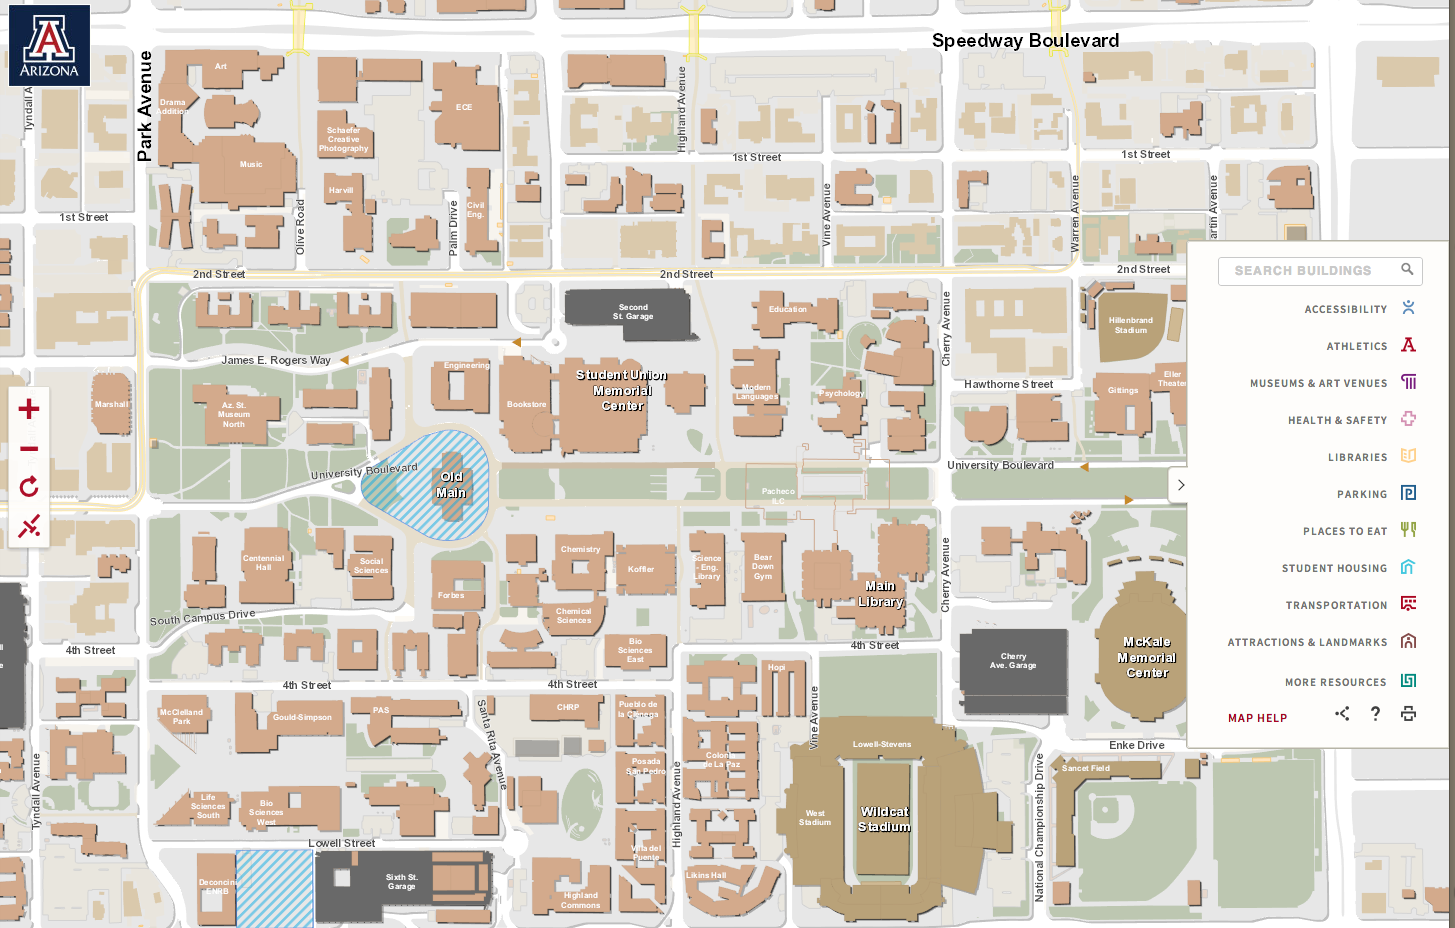 Interactive Campus Map Ua.New Interactive Map Makes Navigating Campus Easier Ua Work